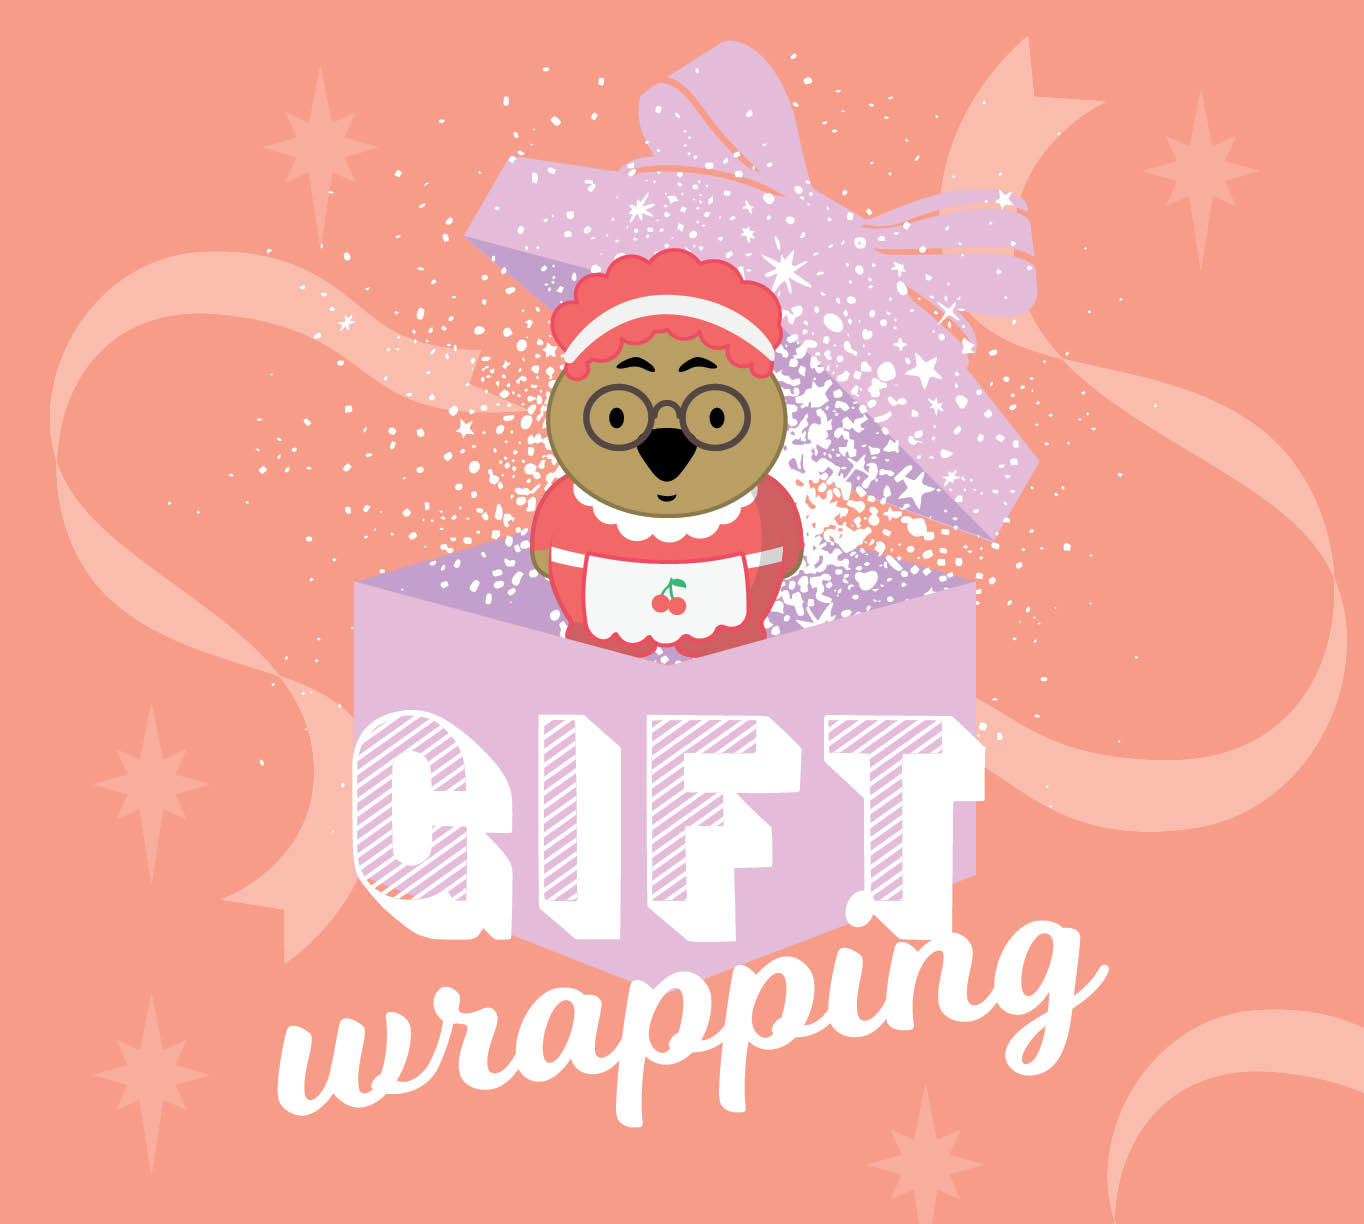 CH4806_Xmas 2019_Web Tiles_Gift Wrapping_628x612px